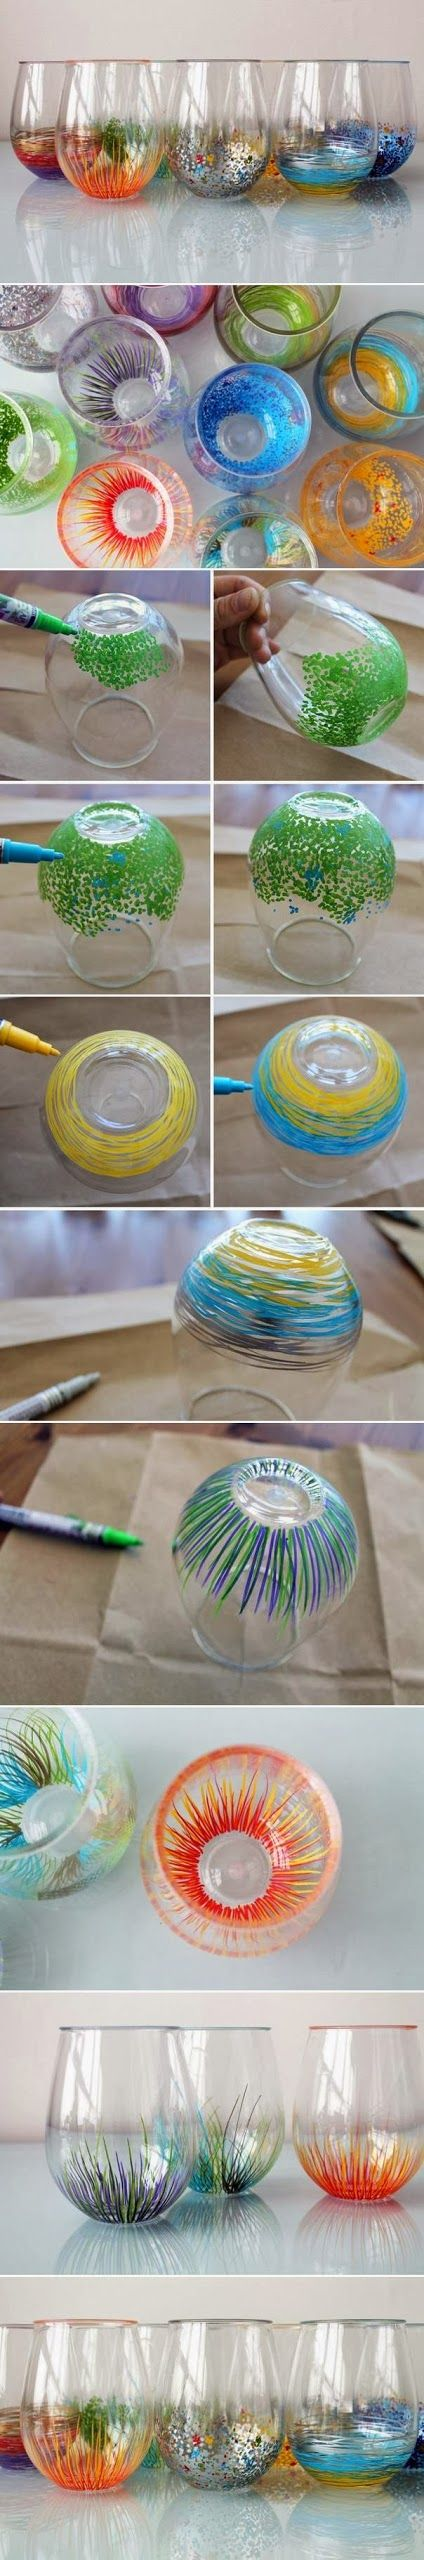 DIY: Wine glass. This would be perfect for a wine party.